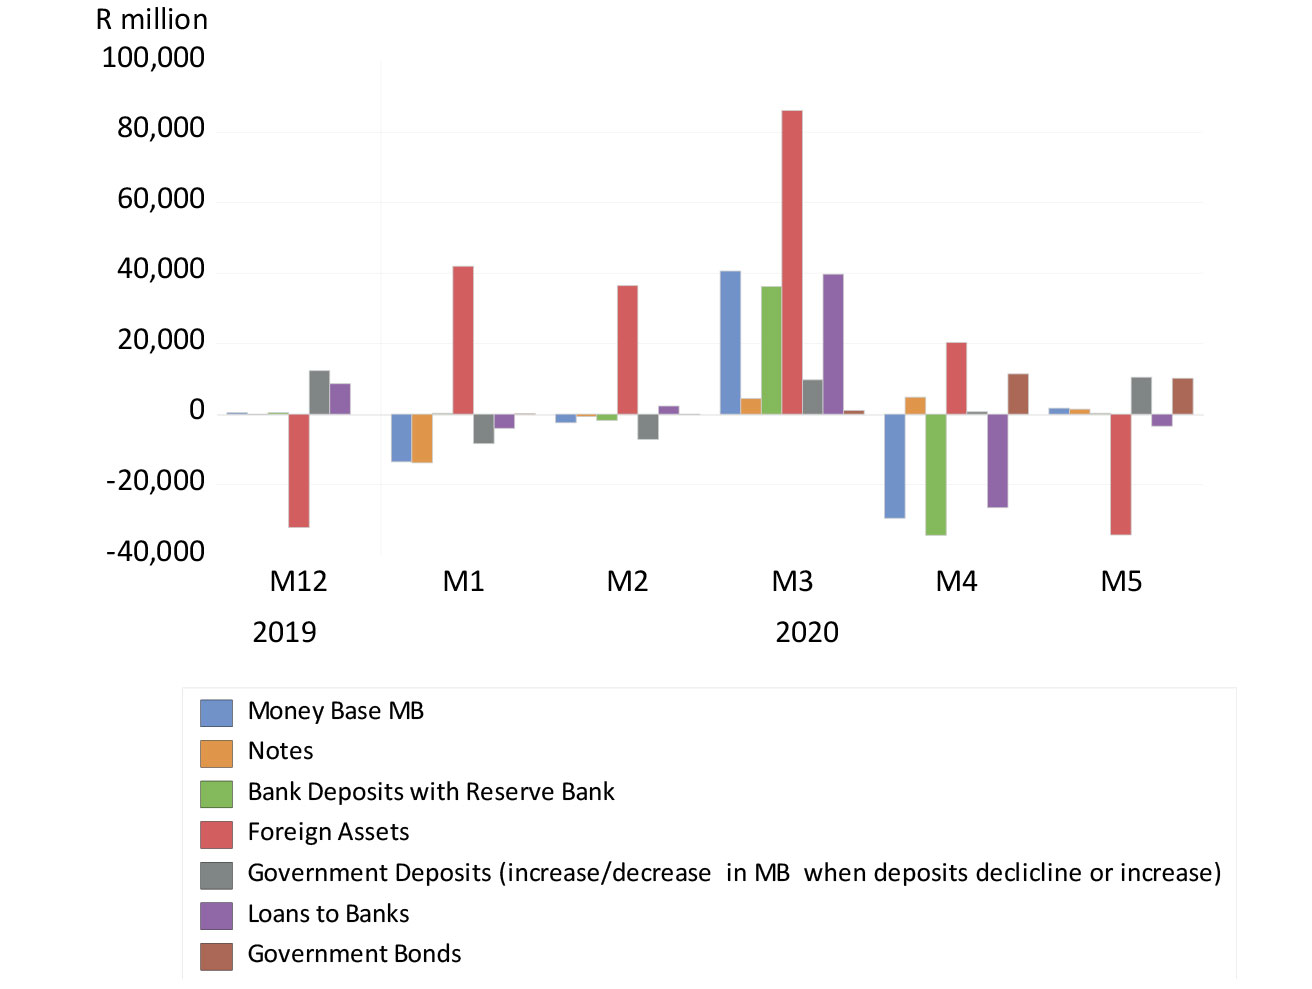 Reserve Bank balance sheet – monthly movements affecting the money base (December 2019 to May 2020)